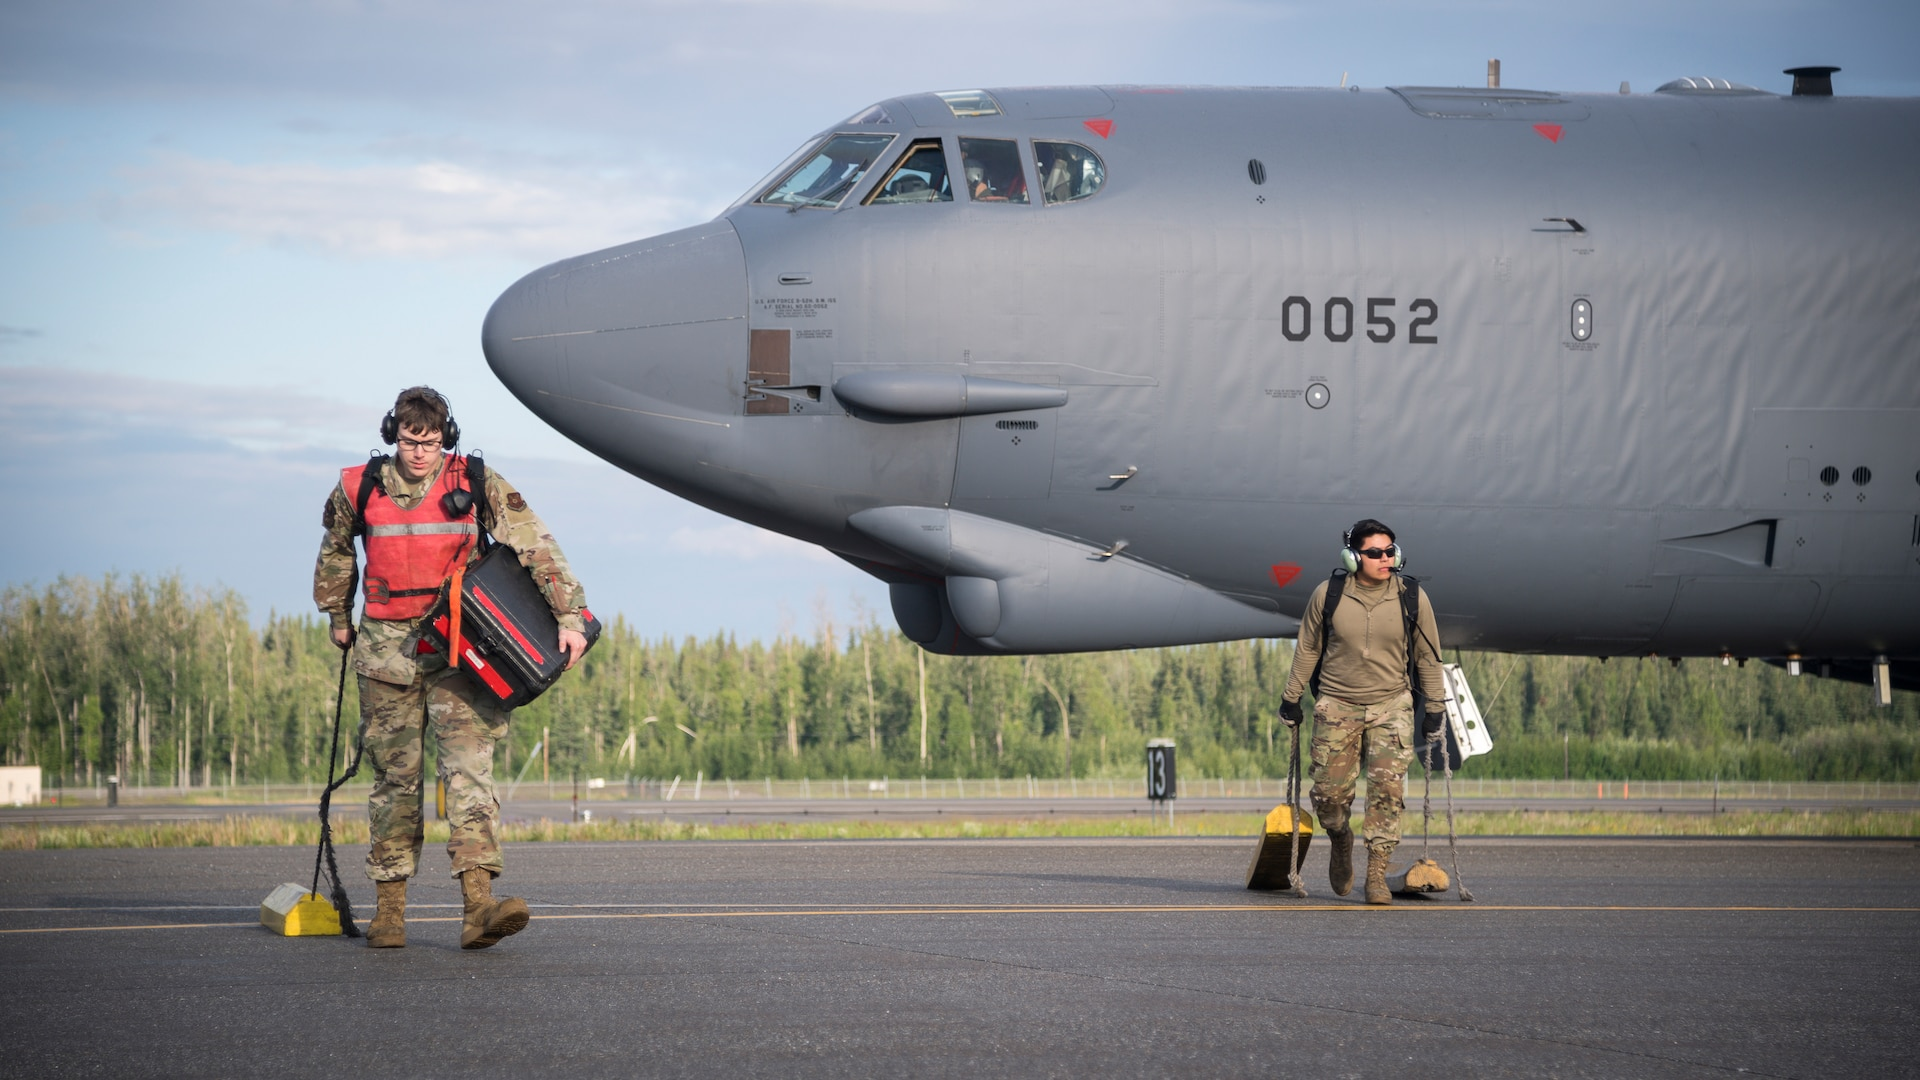 A B-52H Stratofortress deployed from Barksdale Air Force Base, La., taxis down the flight line at Eielson Air Force Base, Alaska, June 16, 2020. This Bomber Task Force brought B-52H Stratofortress bombers and 2nd Bomb Wing Airmen to the Indo-Pacific theater to test their ability to integrate and operate from a forward location. (U.S. Air Force photo by Senior Airman Lillian Miller)